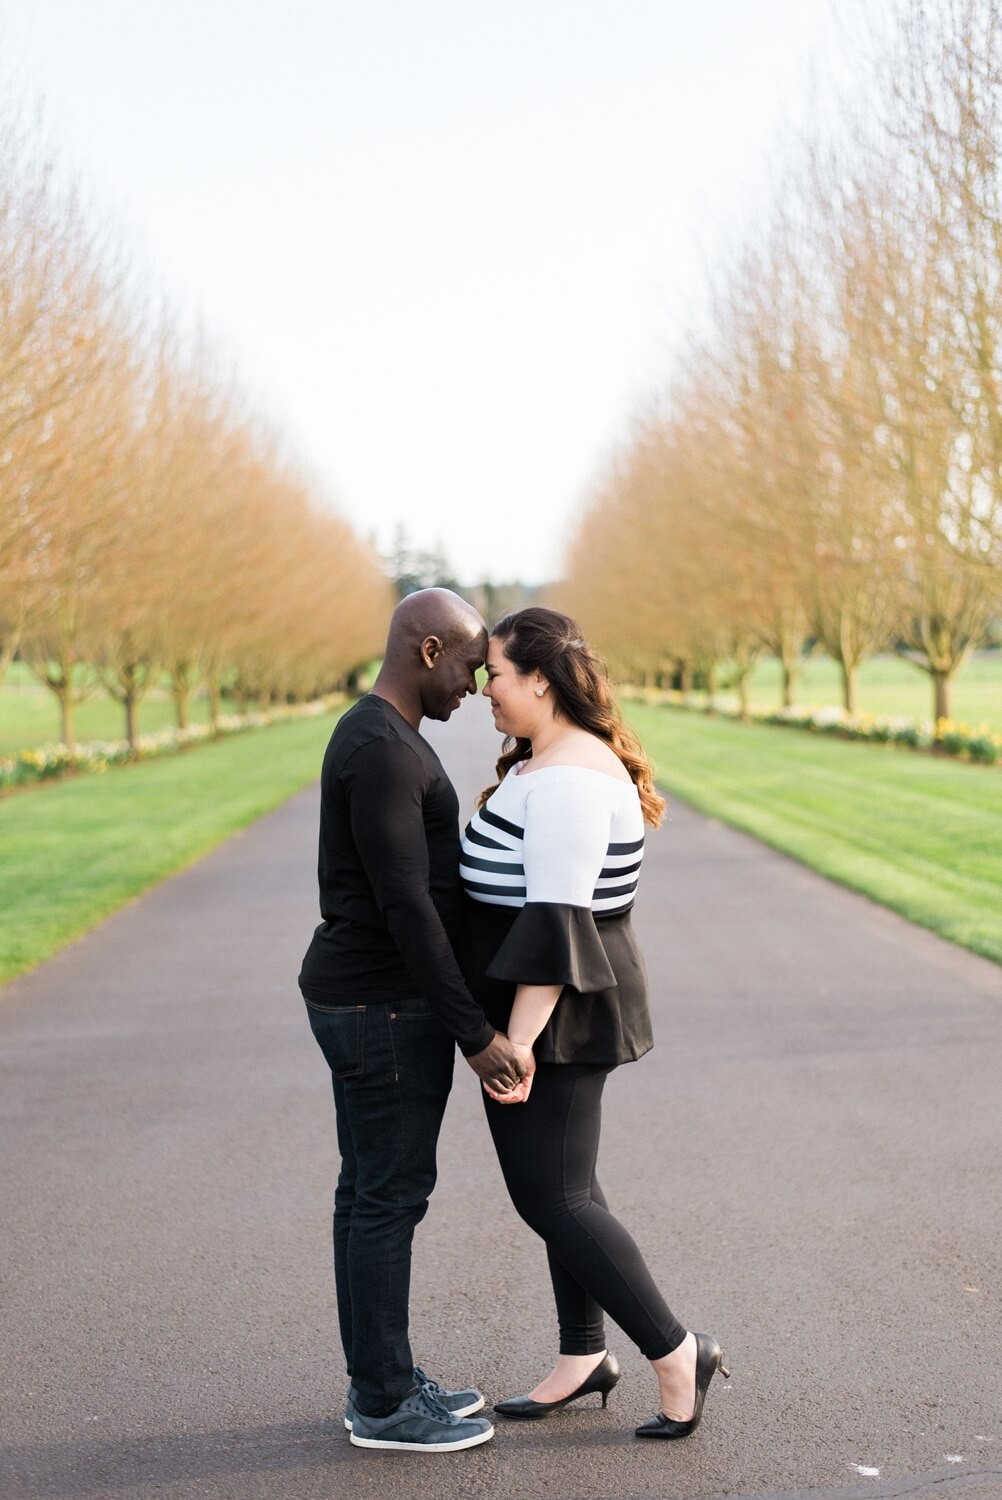 portland-vineyard-engagement-photos-daniel-andrea-216_cr.jpg